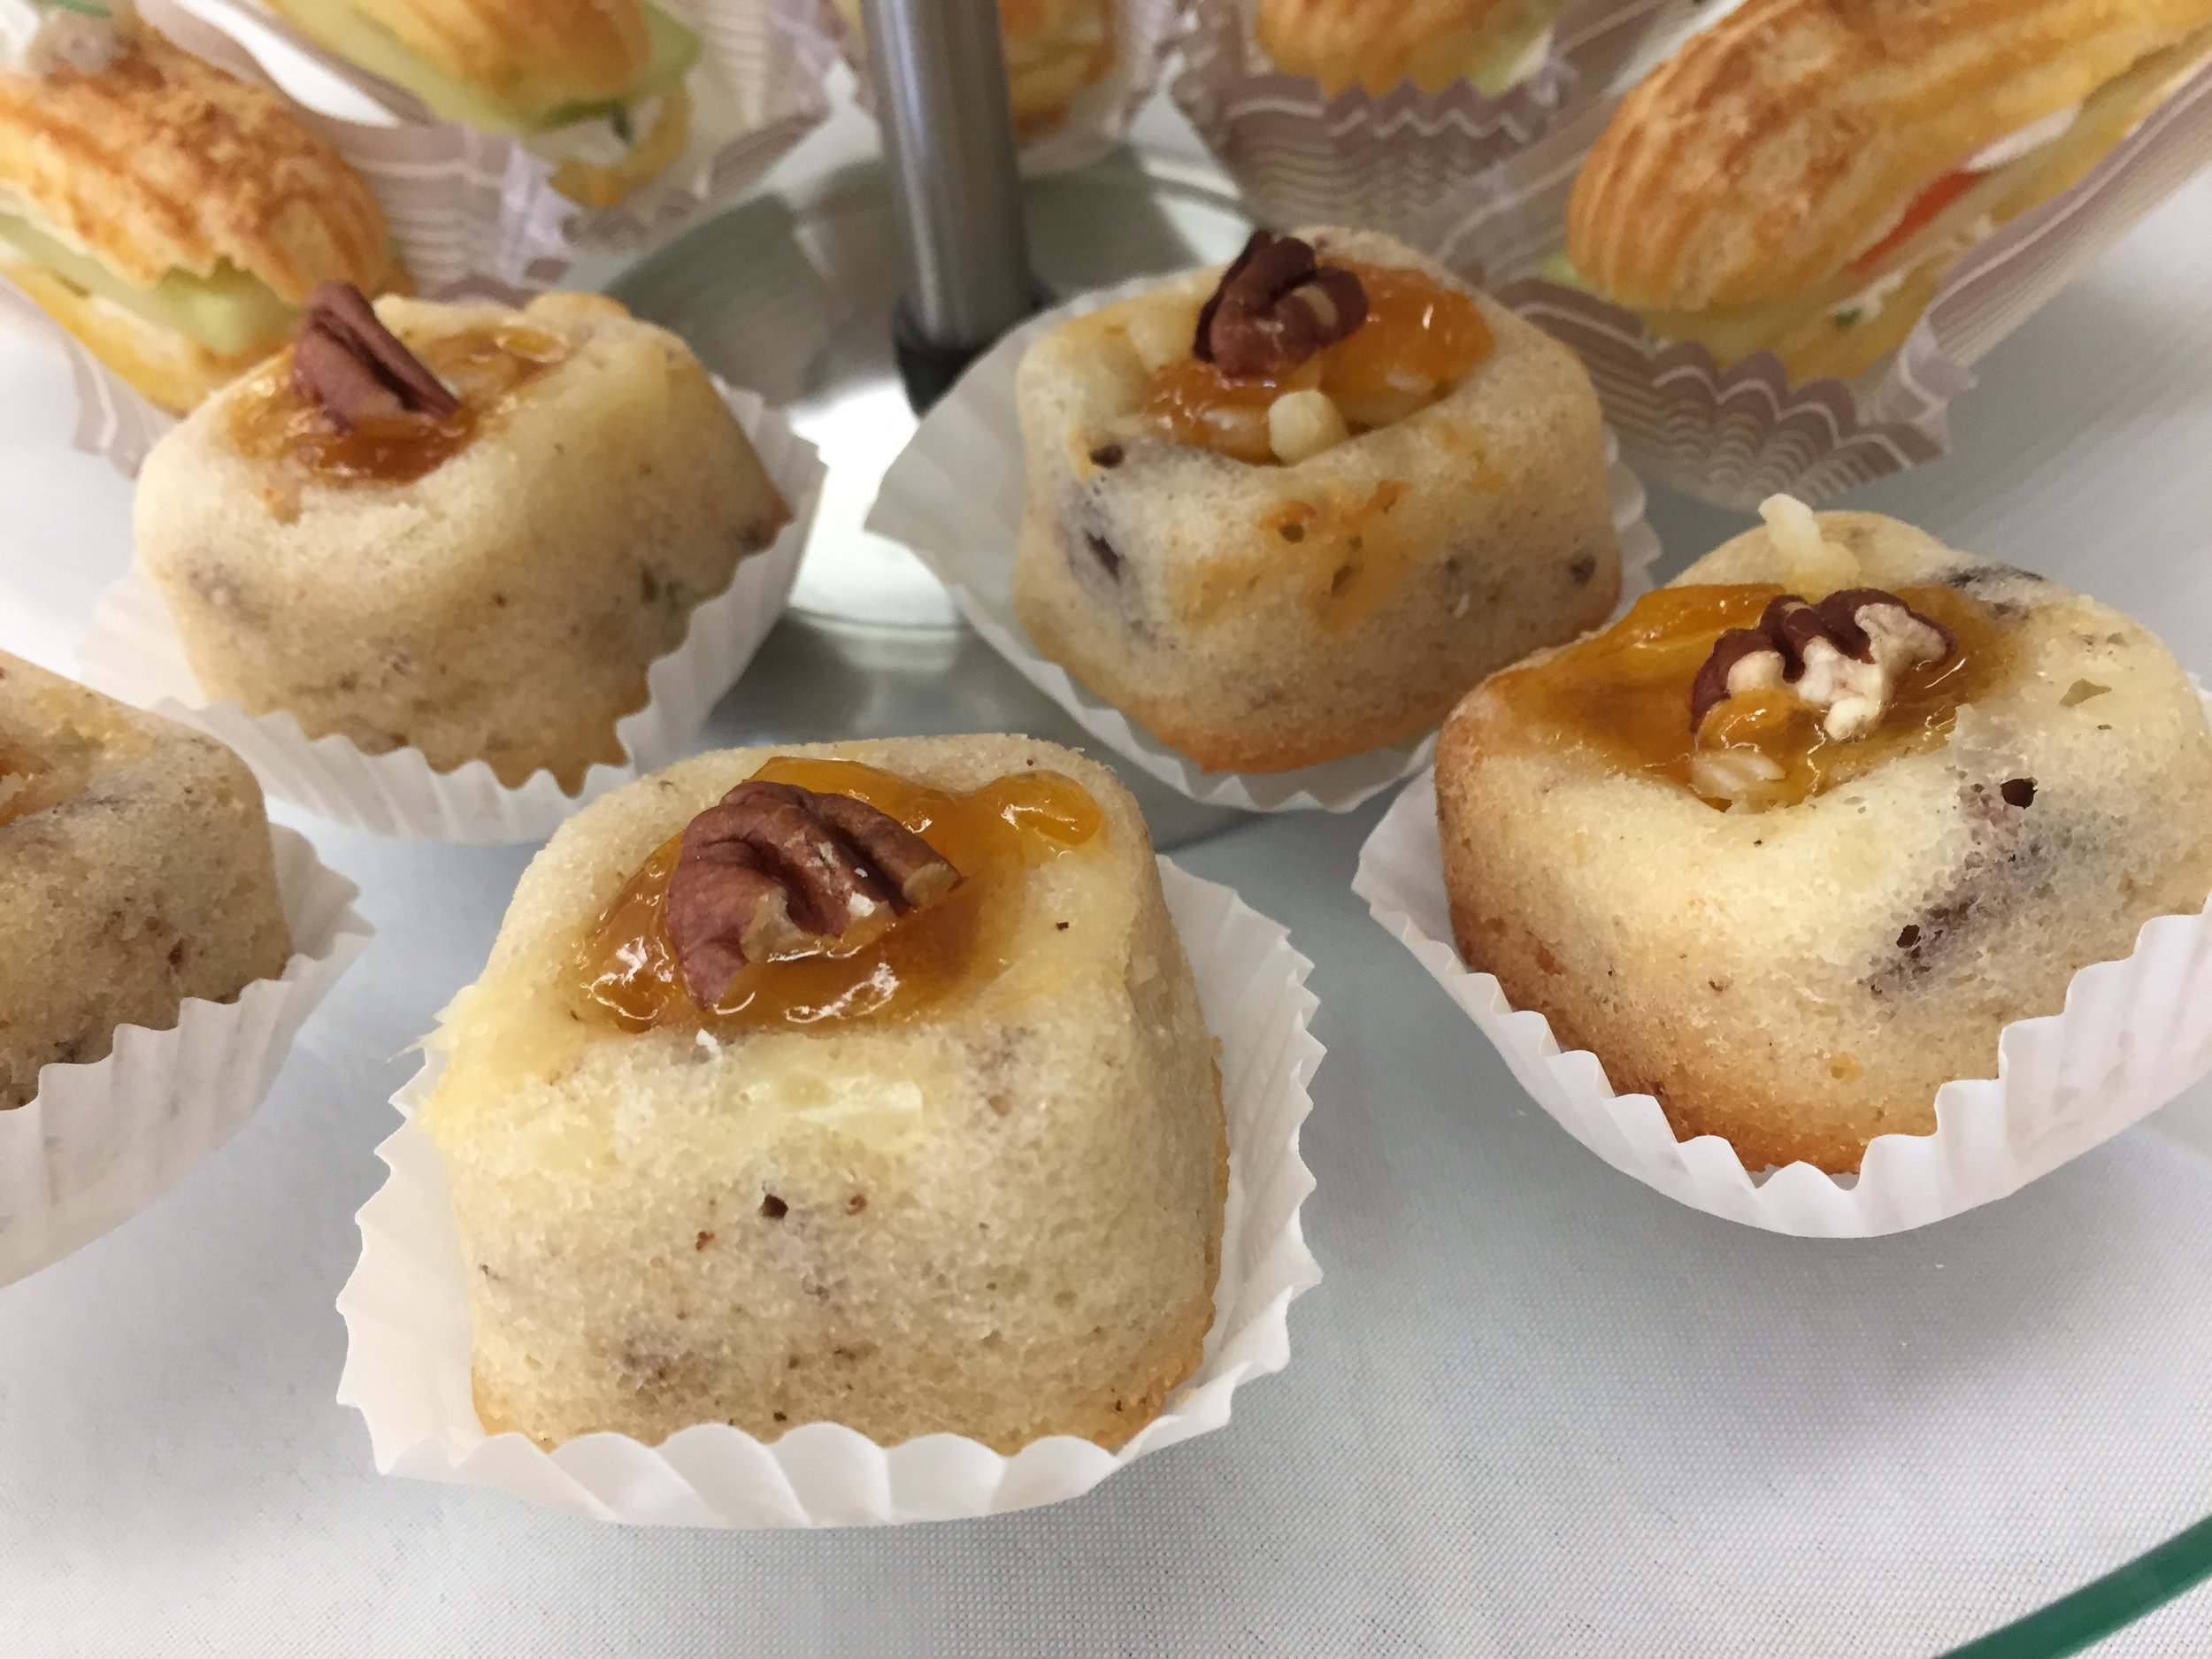 Cheddar pecan financier